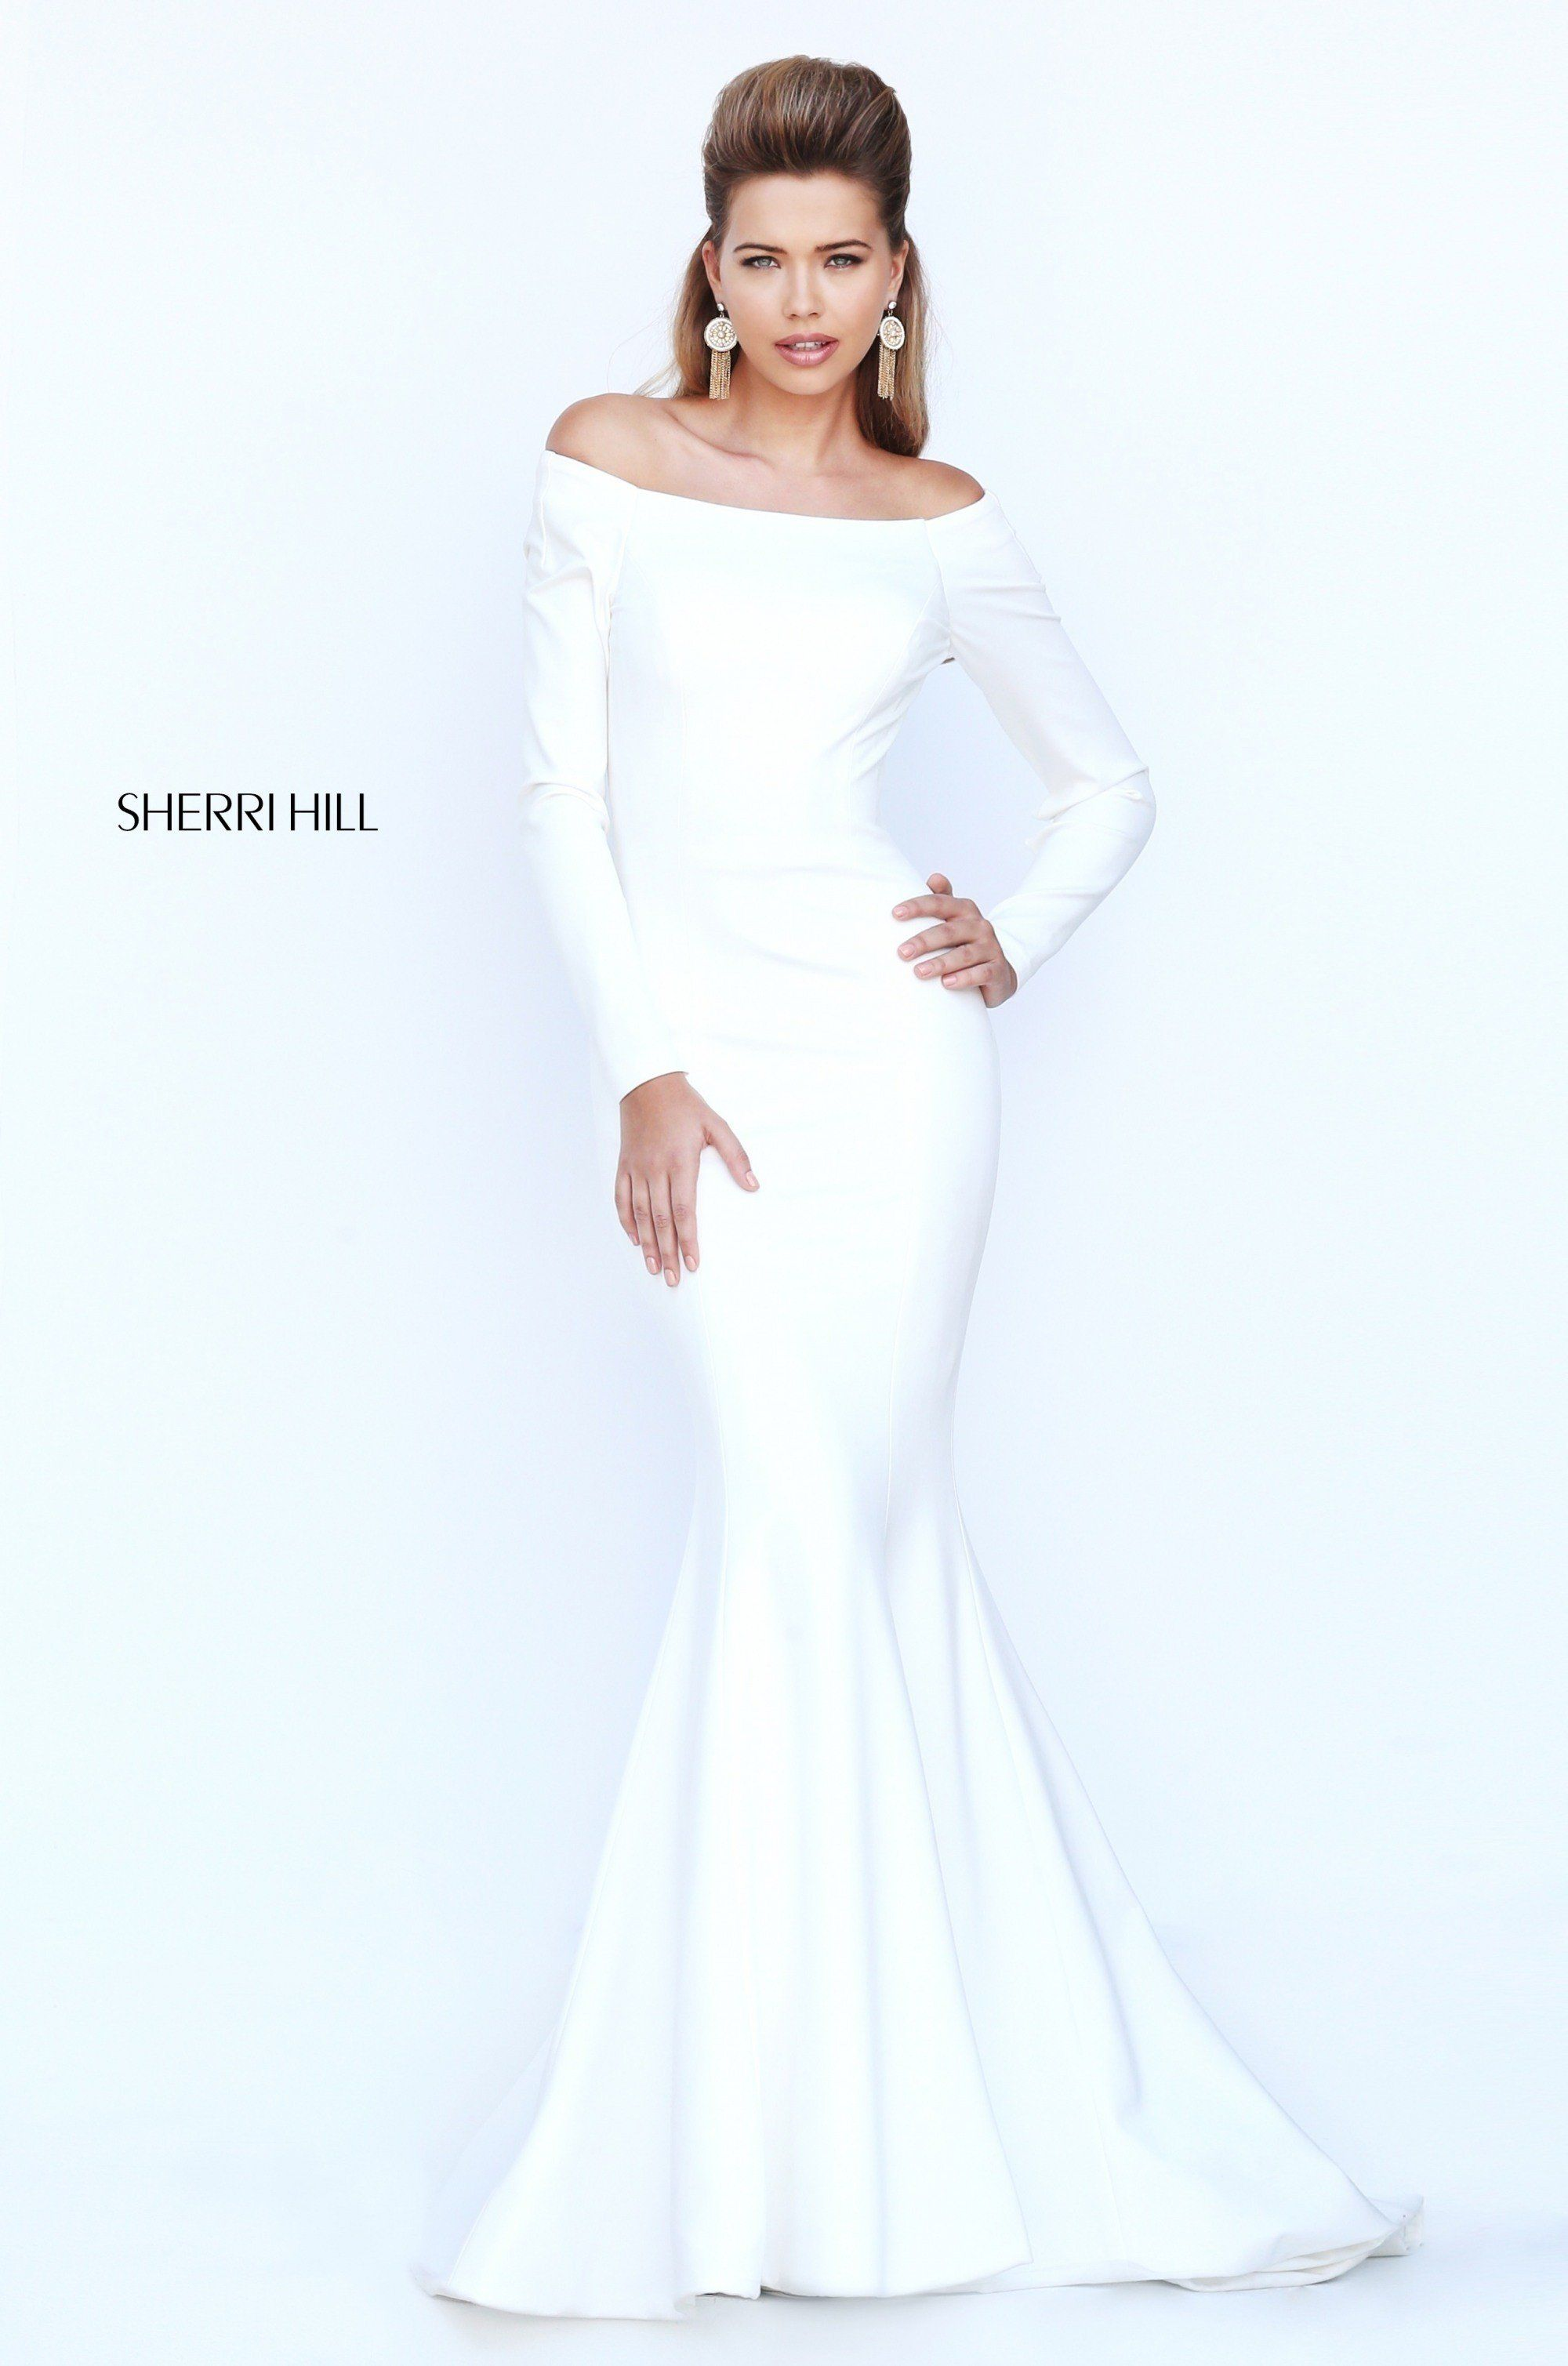 076bbed5a5 Sherri Hill 52511 Off the Shoulder Long Sleeve Ivory Dress in 2019 ...